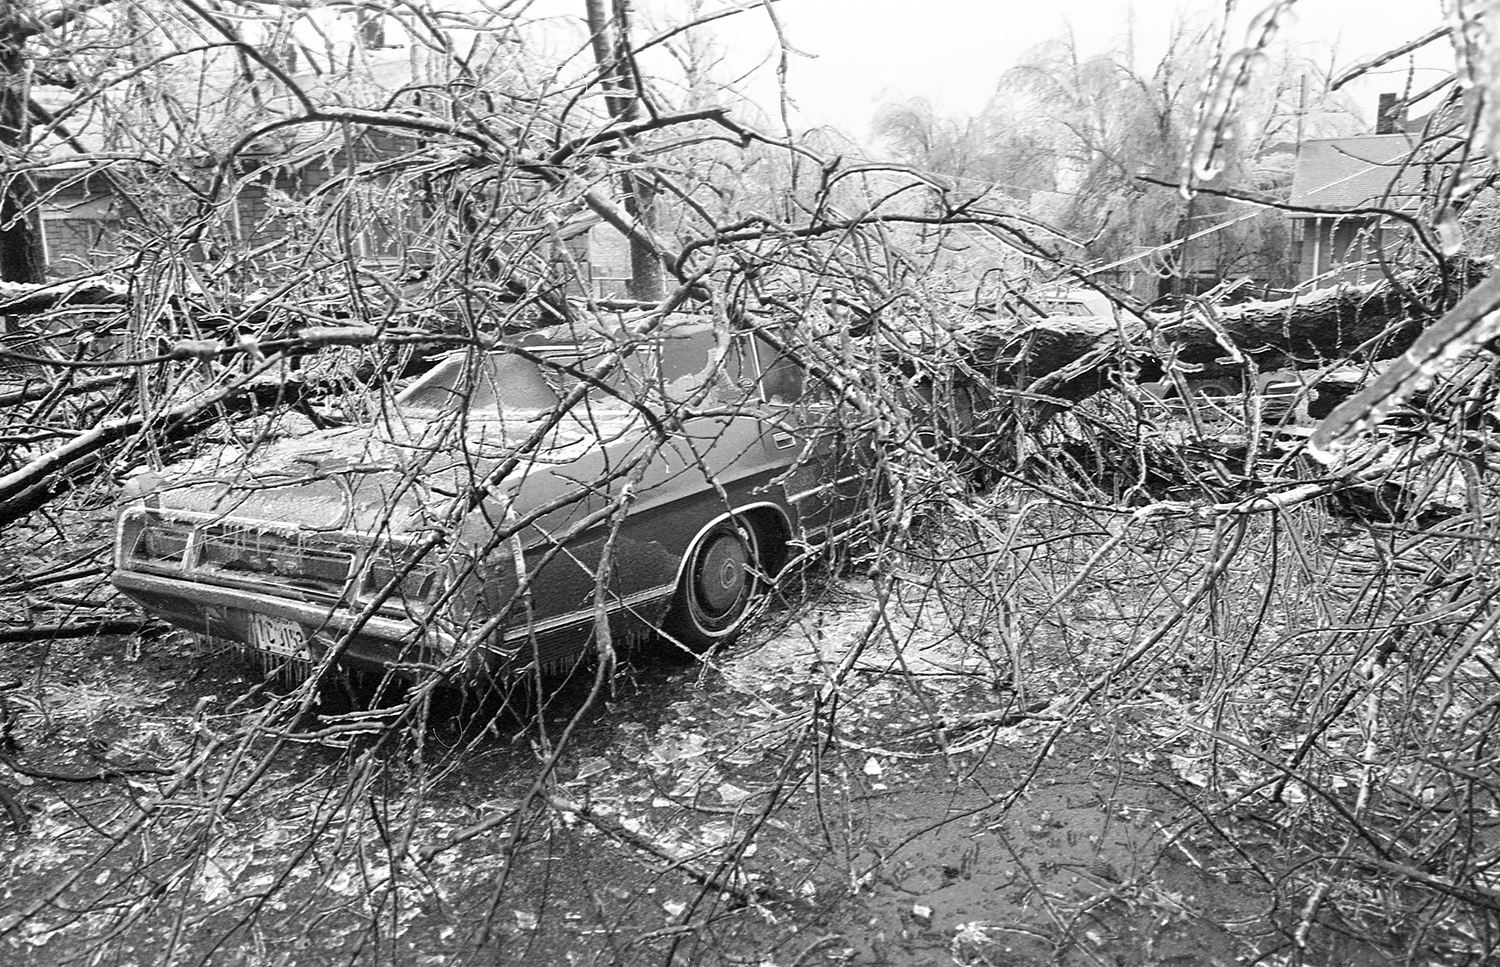 A car at Eleventh Street and Stanford Avenue is crushed by a tree.